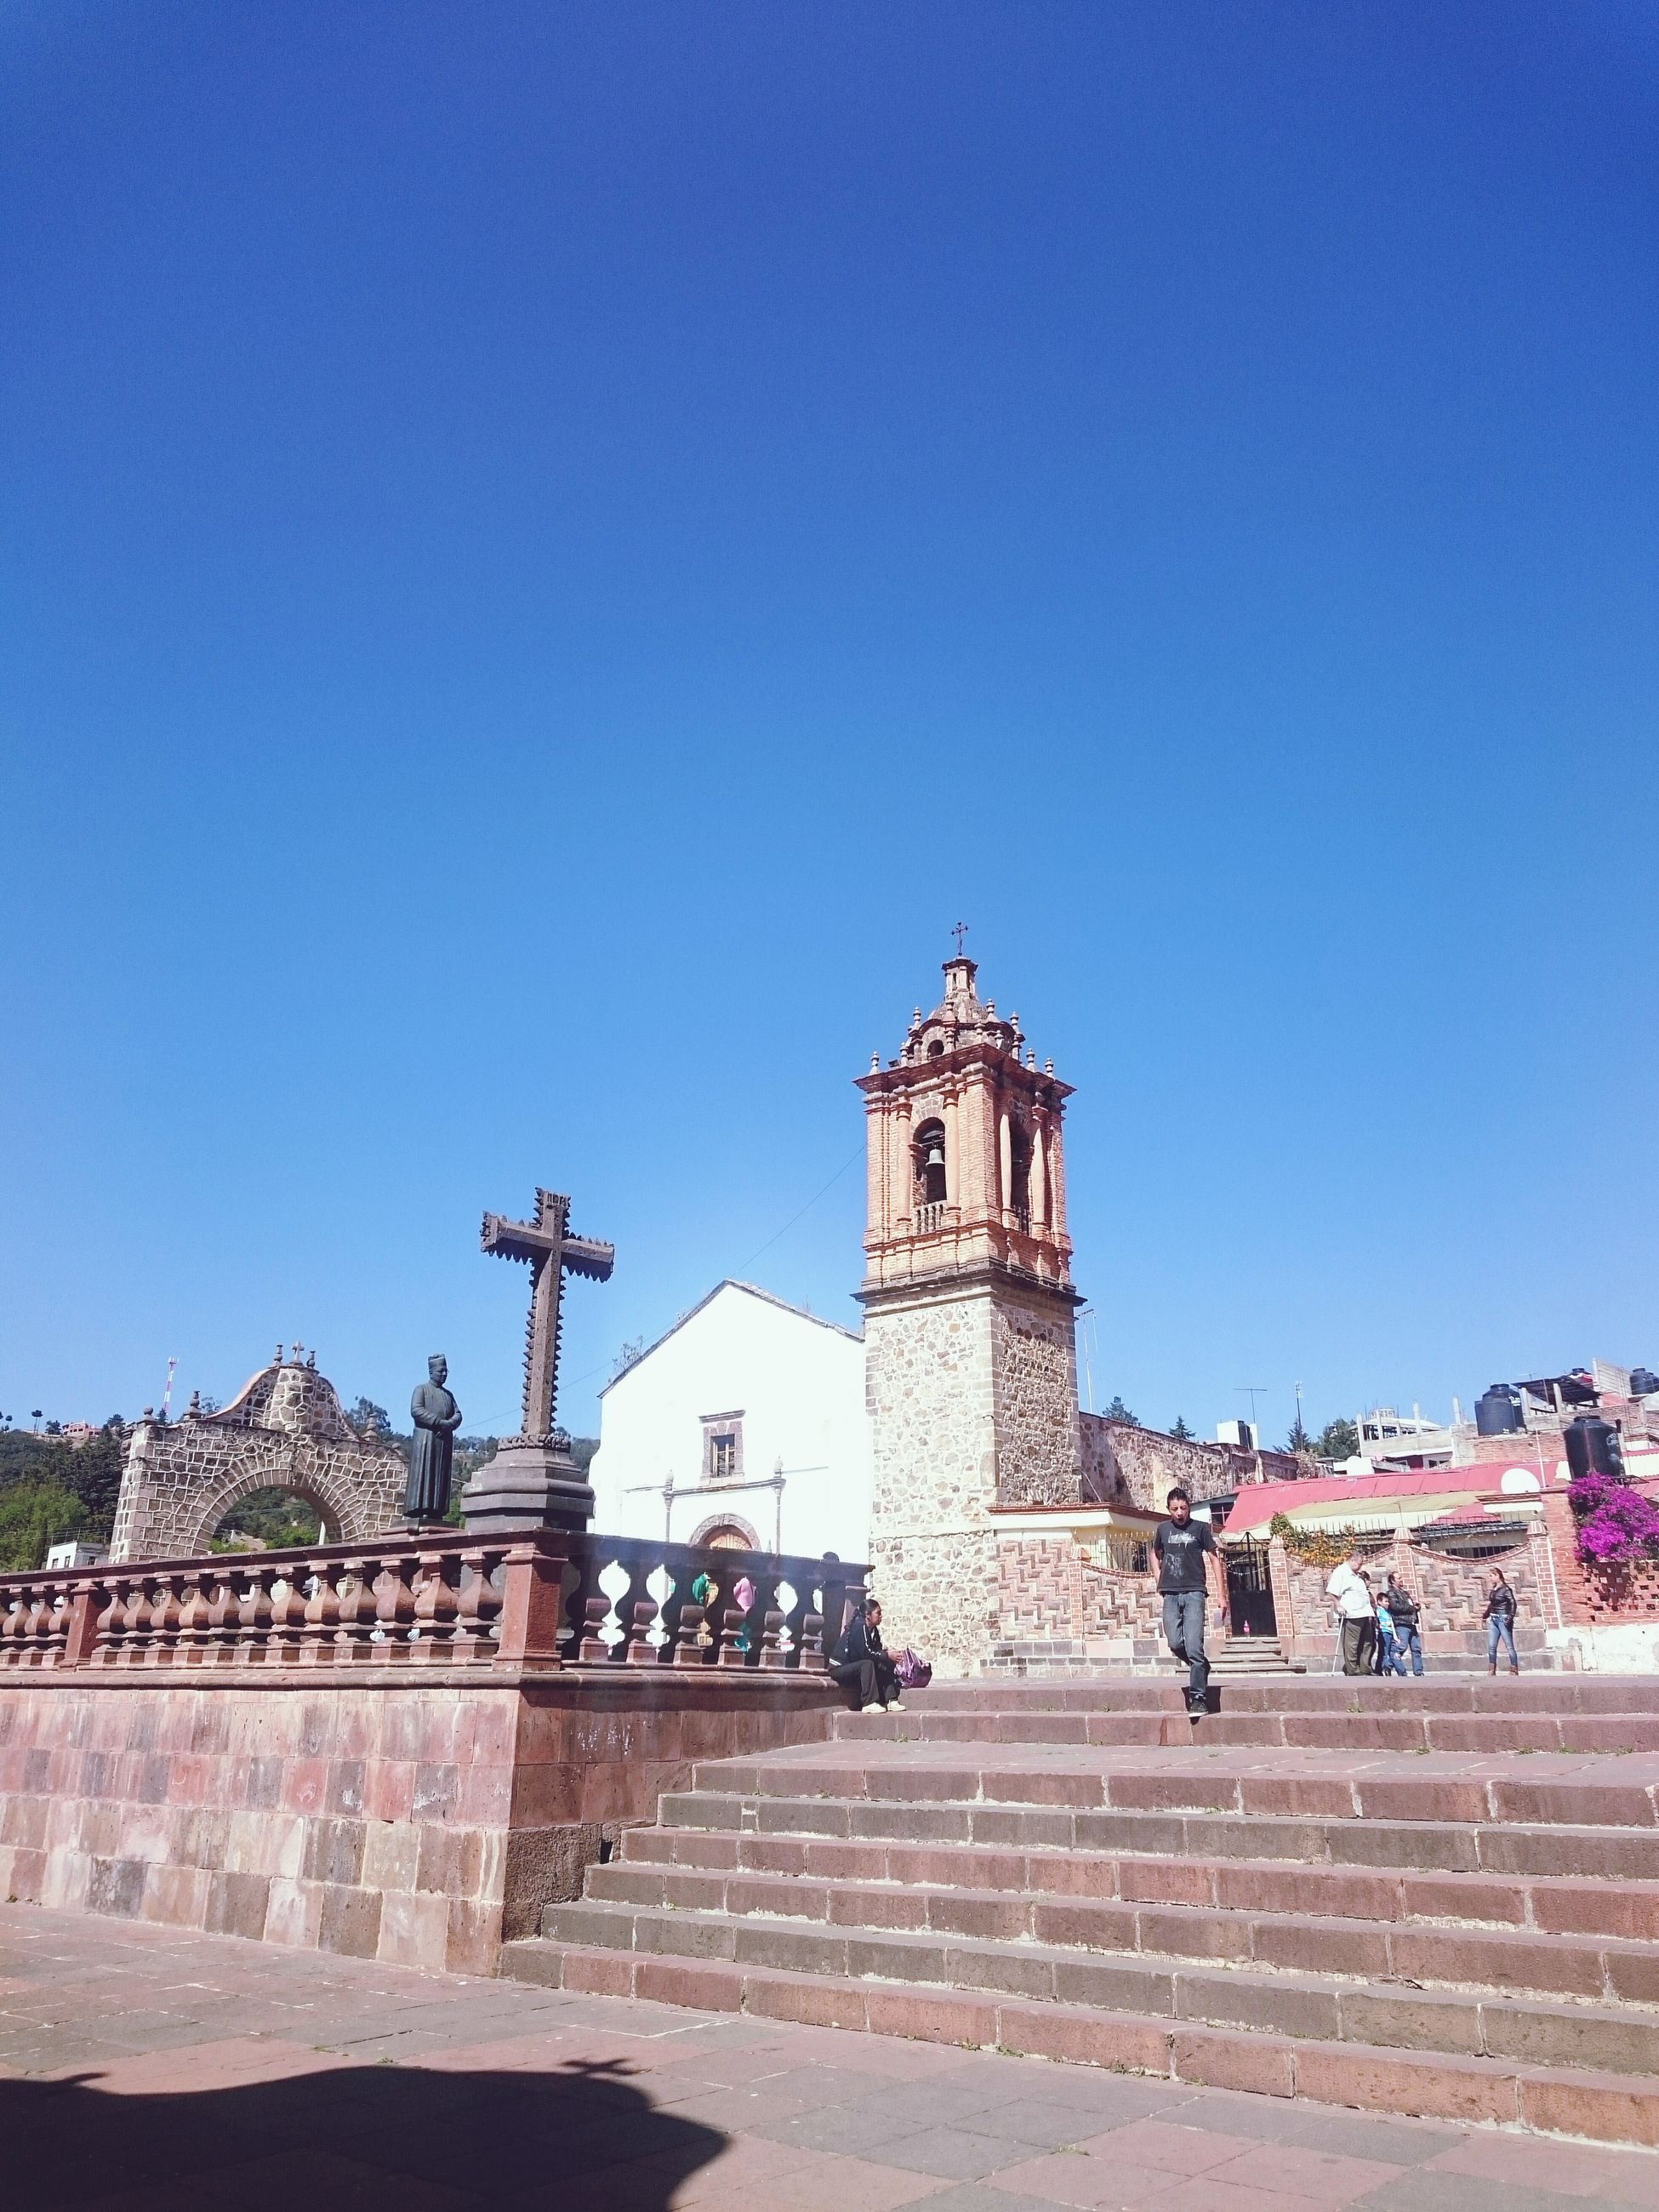 clear sky, architecture, built structure, building exterior, copy space, blue, religion, place of worship, low angle view, spirituality, history, church, steps, sunlight, travel destinations, famous place, day, outdoors, travel